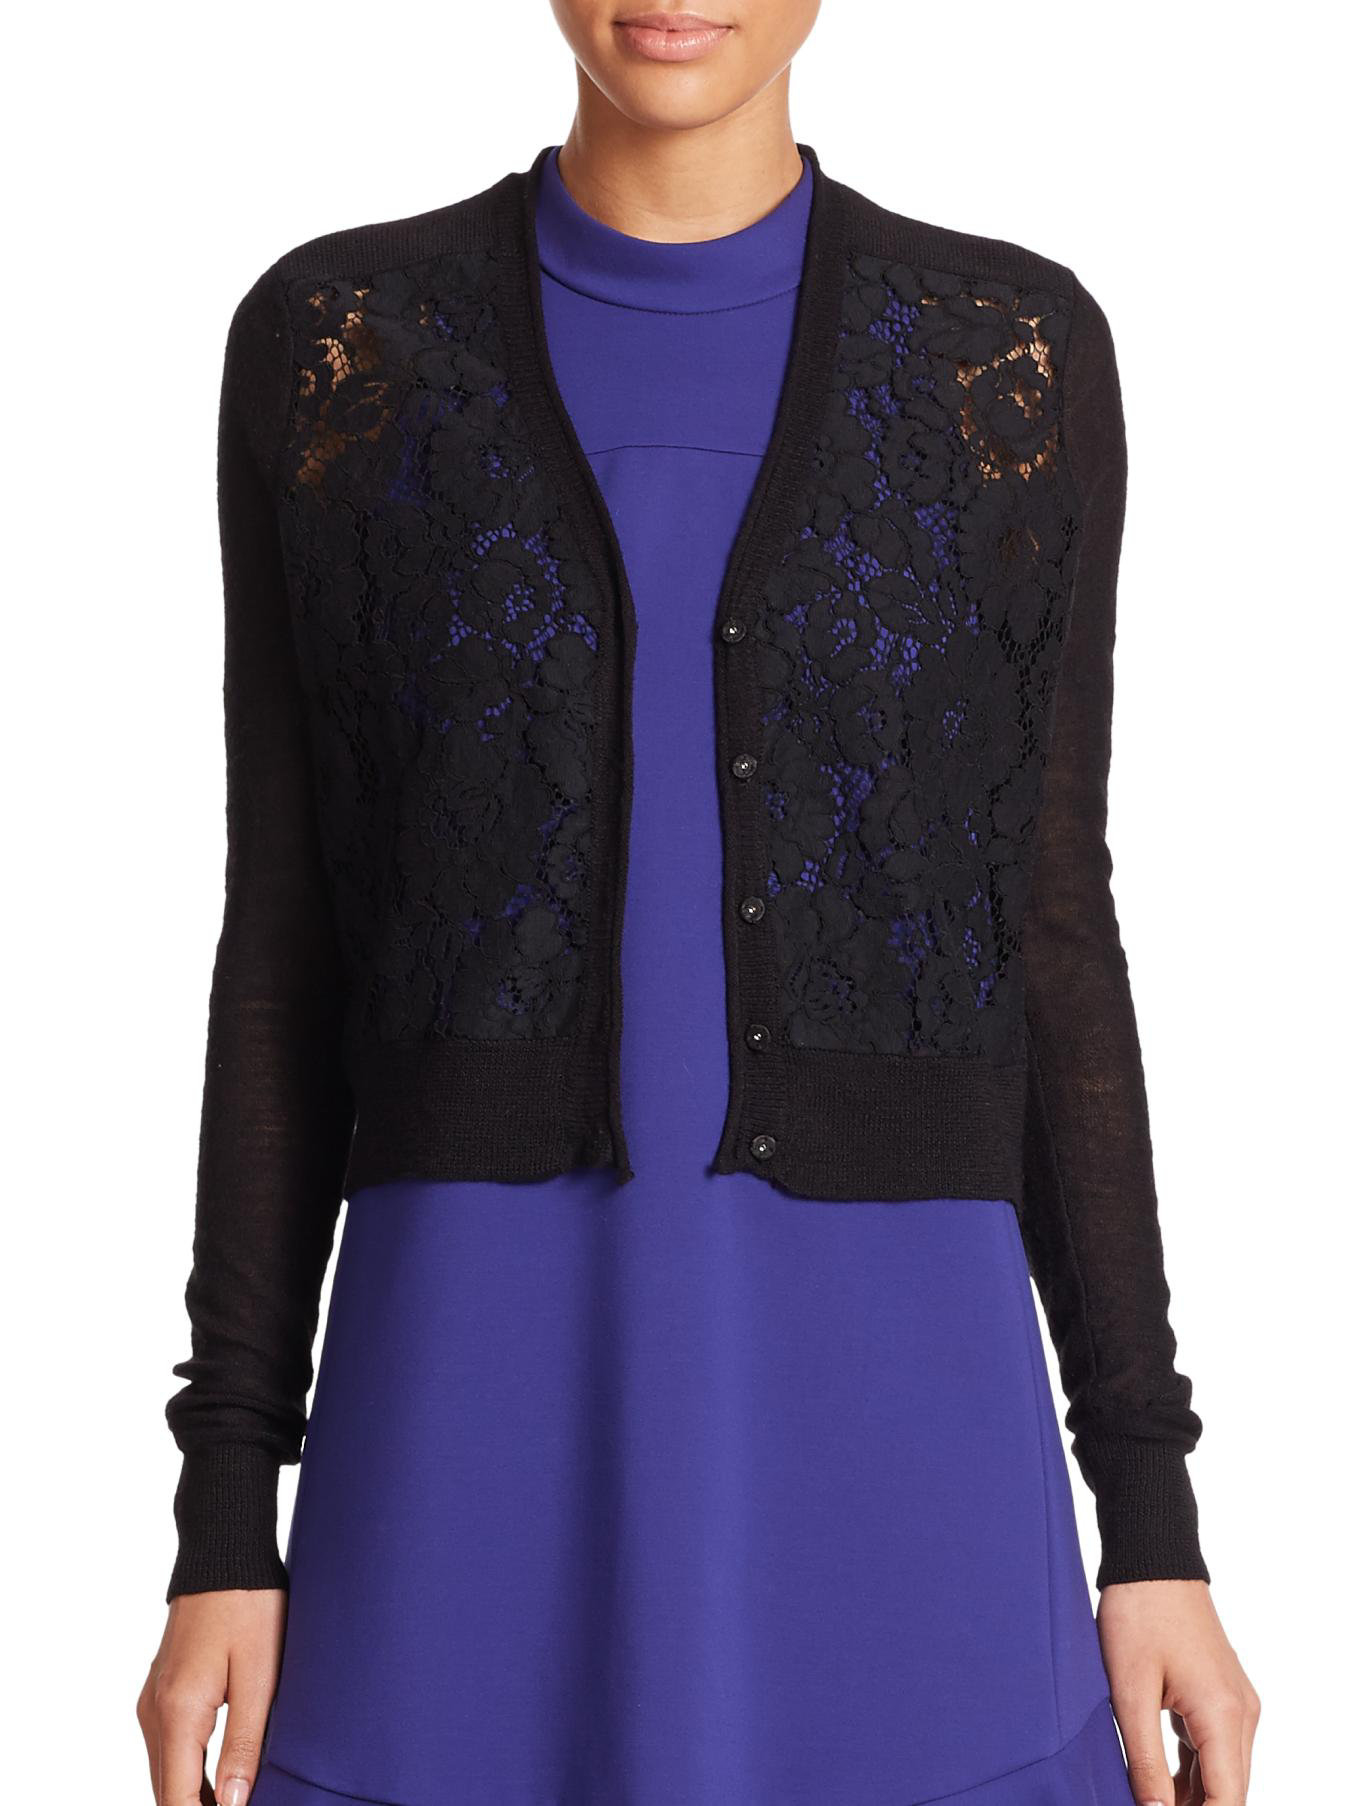 Rebecca taylor Lace-front Cardigan Sweater in Black | Lyst